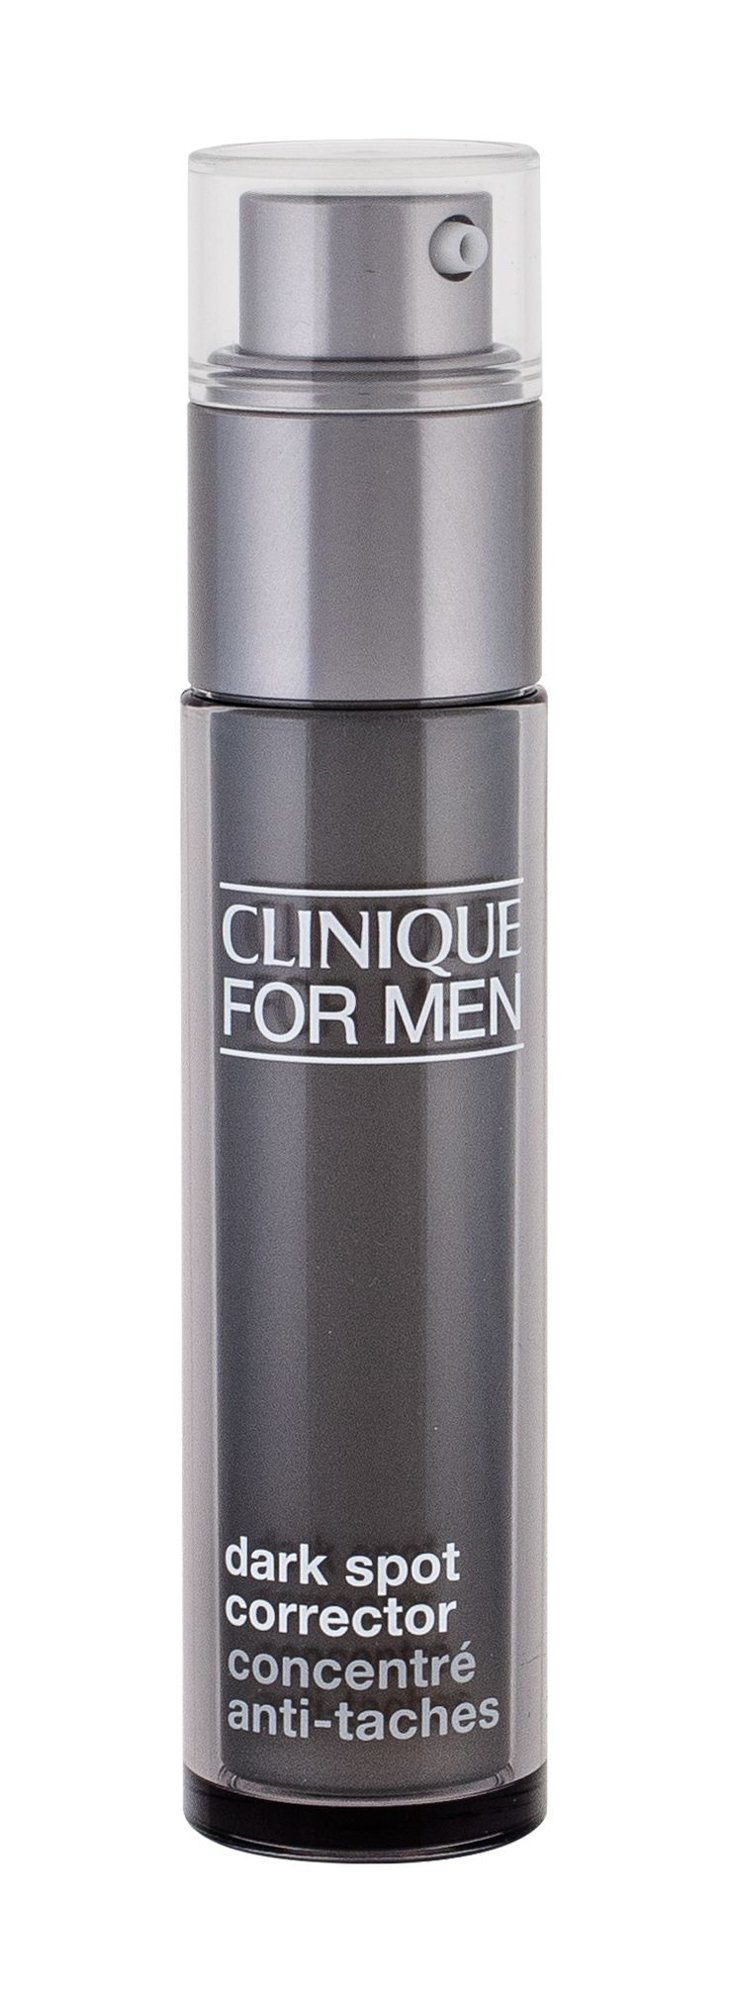 Clinique For Men Cosmetic 30ml  Dark Spot Corrector